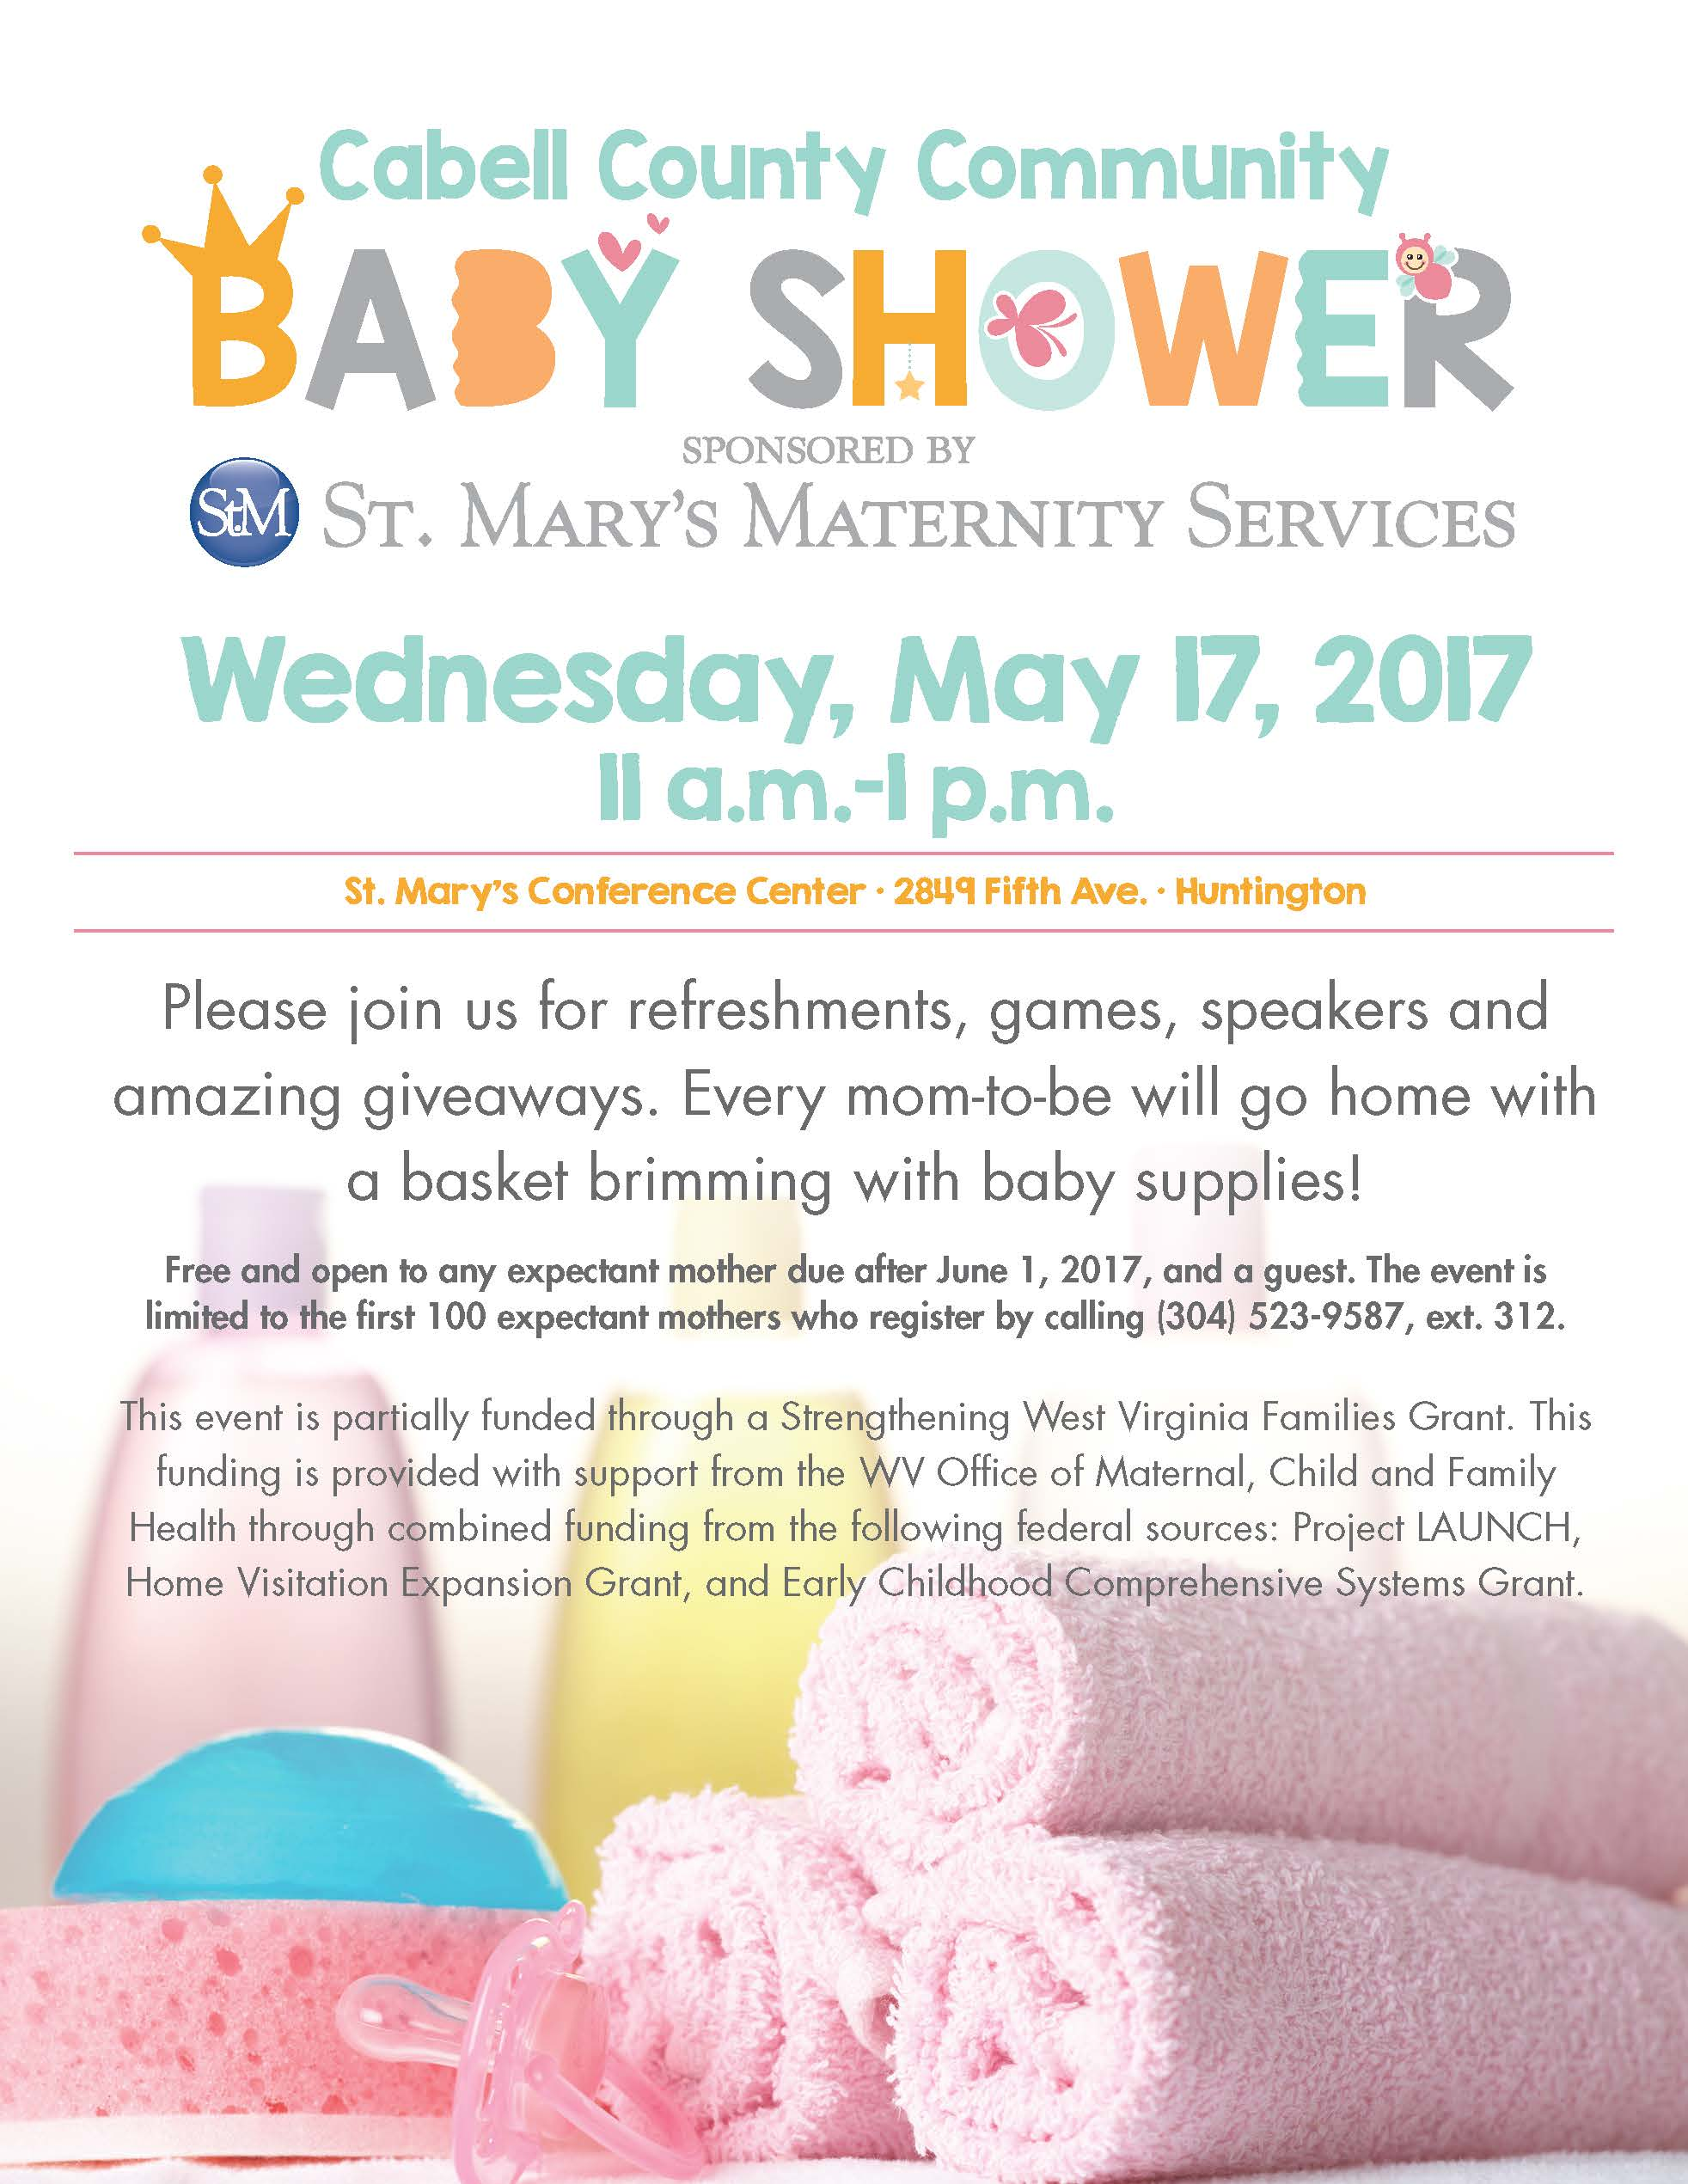 Cabell County munity Baby Shower May 17 – registration required